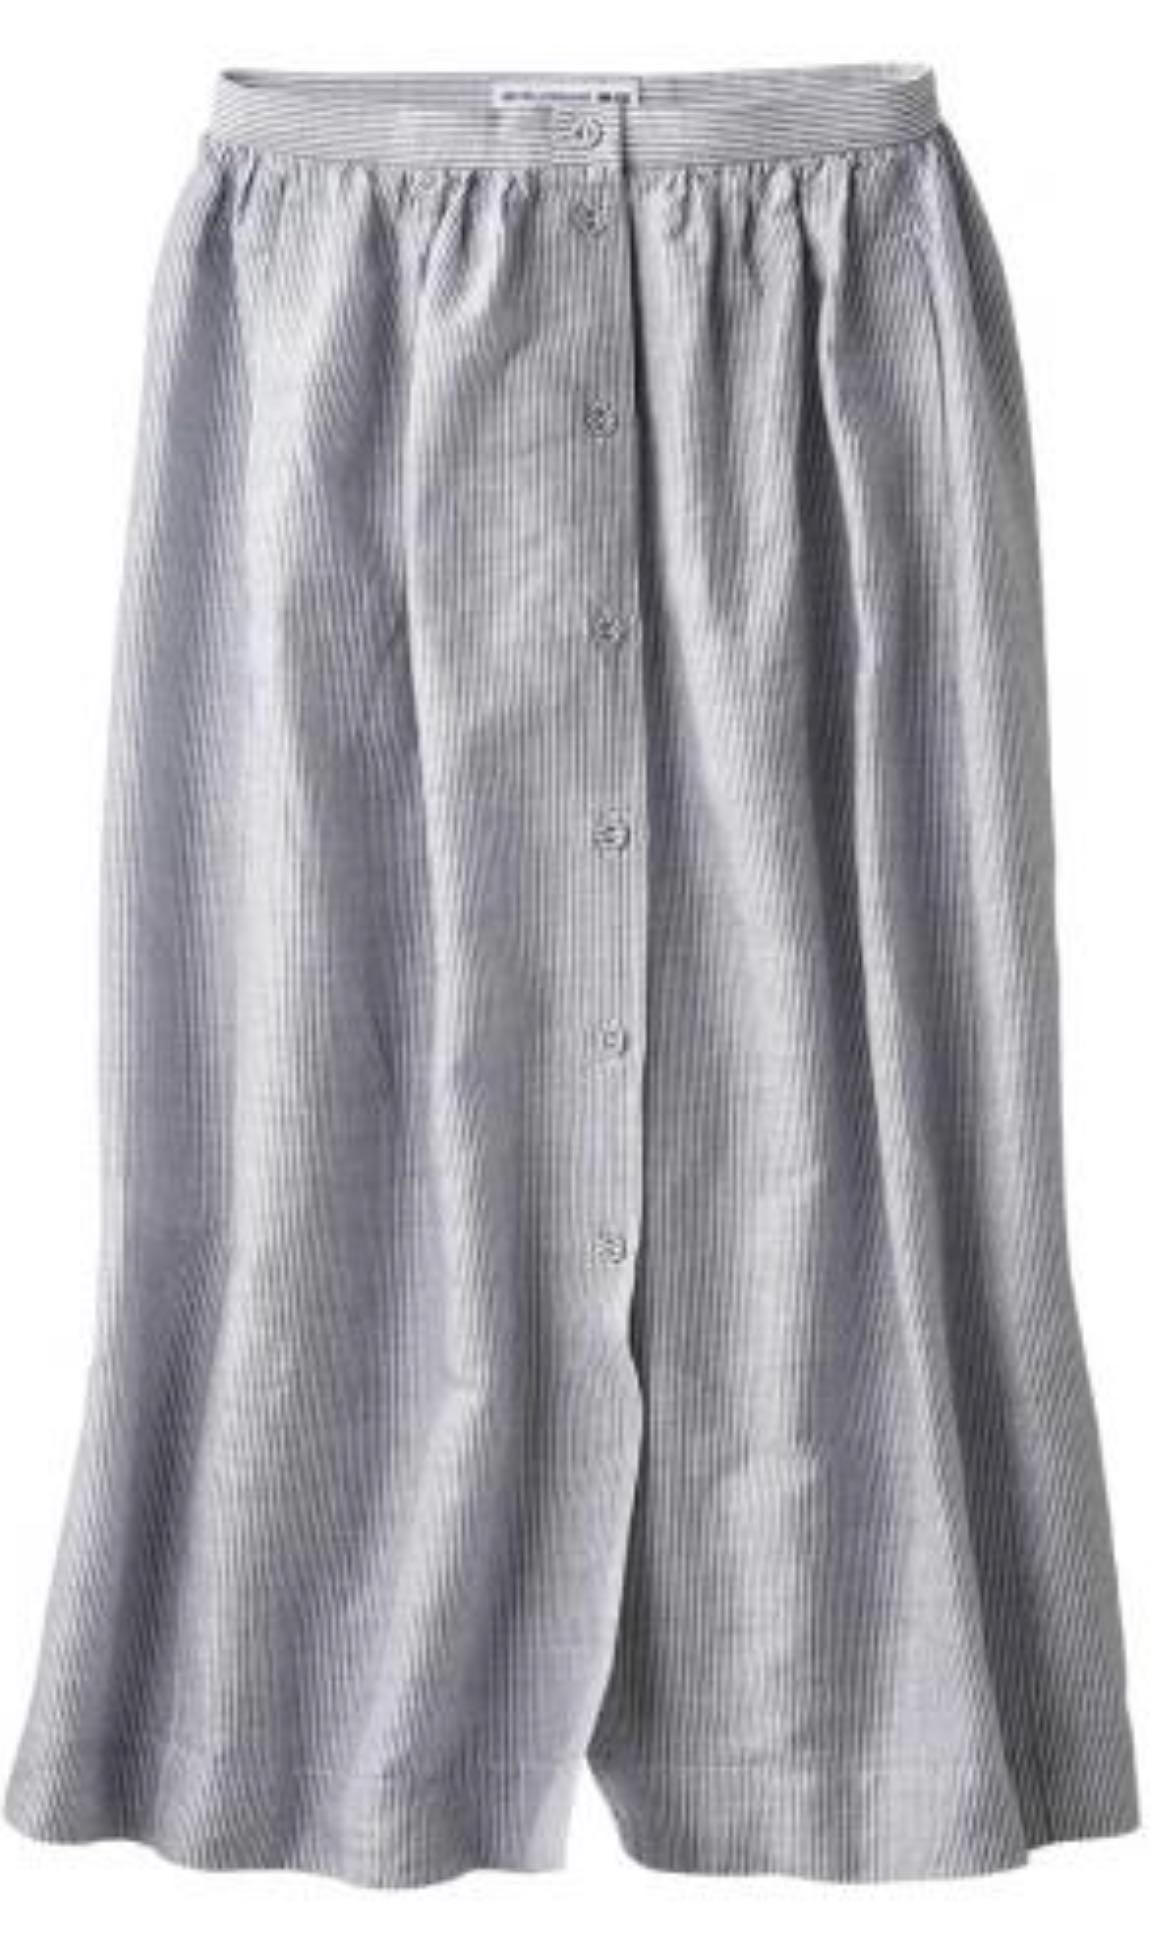 e990fd63d Uniqlo Stripe Gathered Skirt (Ines de la Fressange collection), Women's  Fashion, Clothes, Dresses & Skirts on Carousell